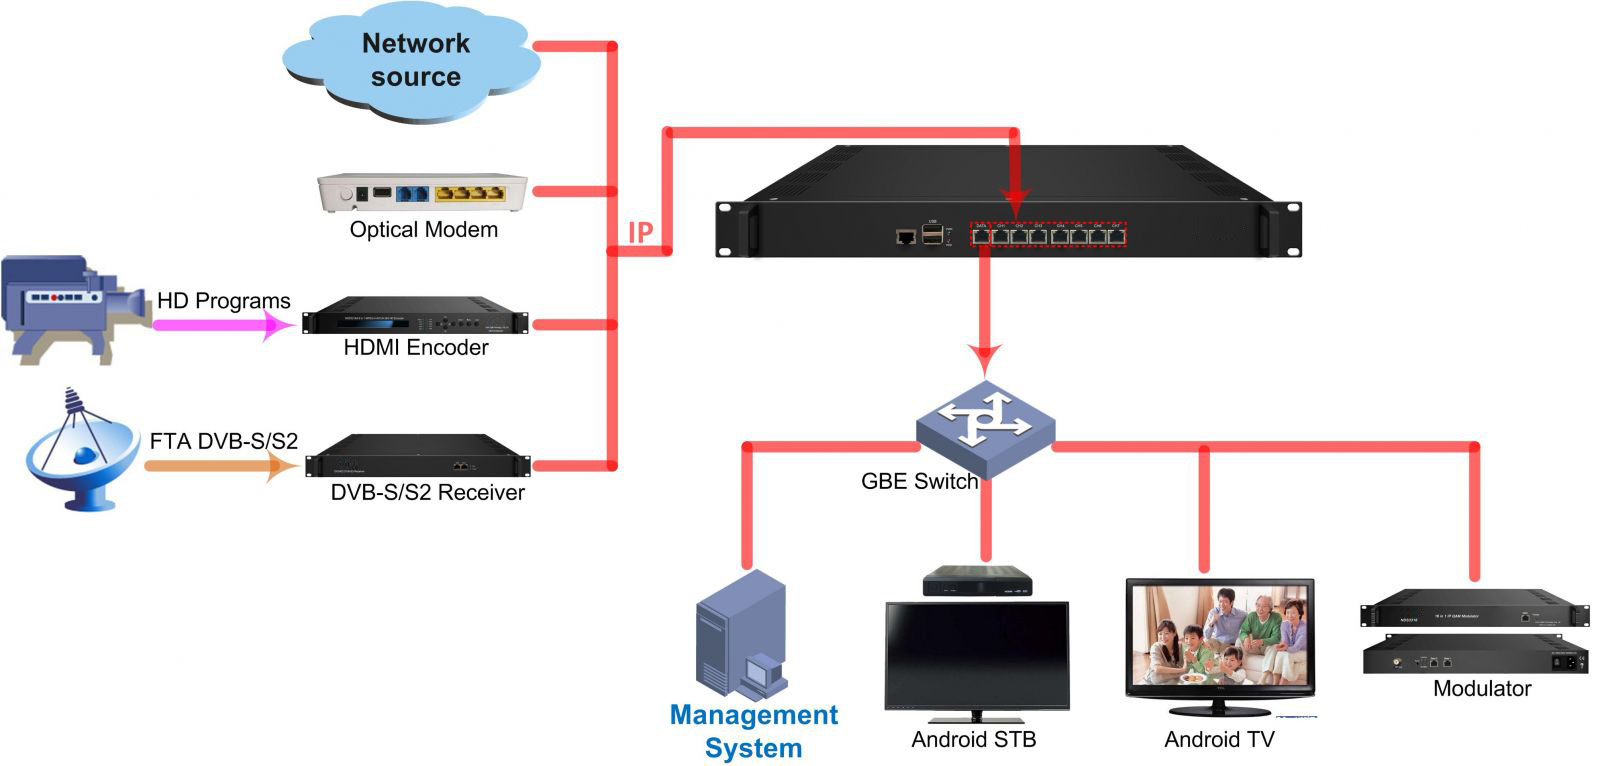 7 IP Over UDP HTTP RTSP HLS To HTTP(Unicast) and UDP(Multicast) IPTV  Gateway, View IPTV Gateway, Shineco Product Details from Chengdu Shineco